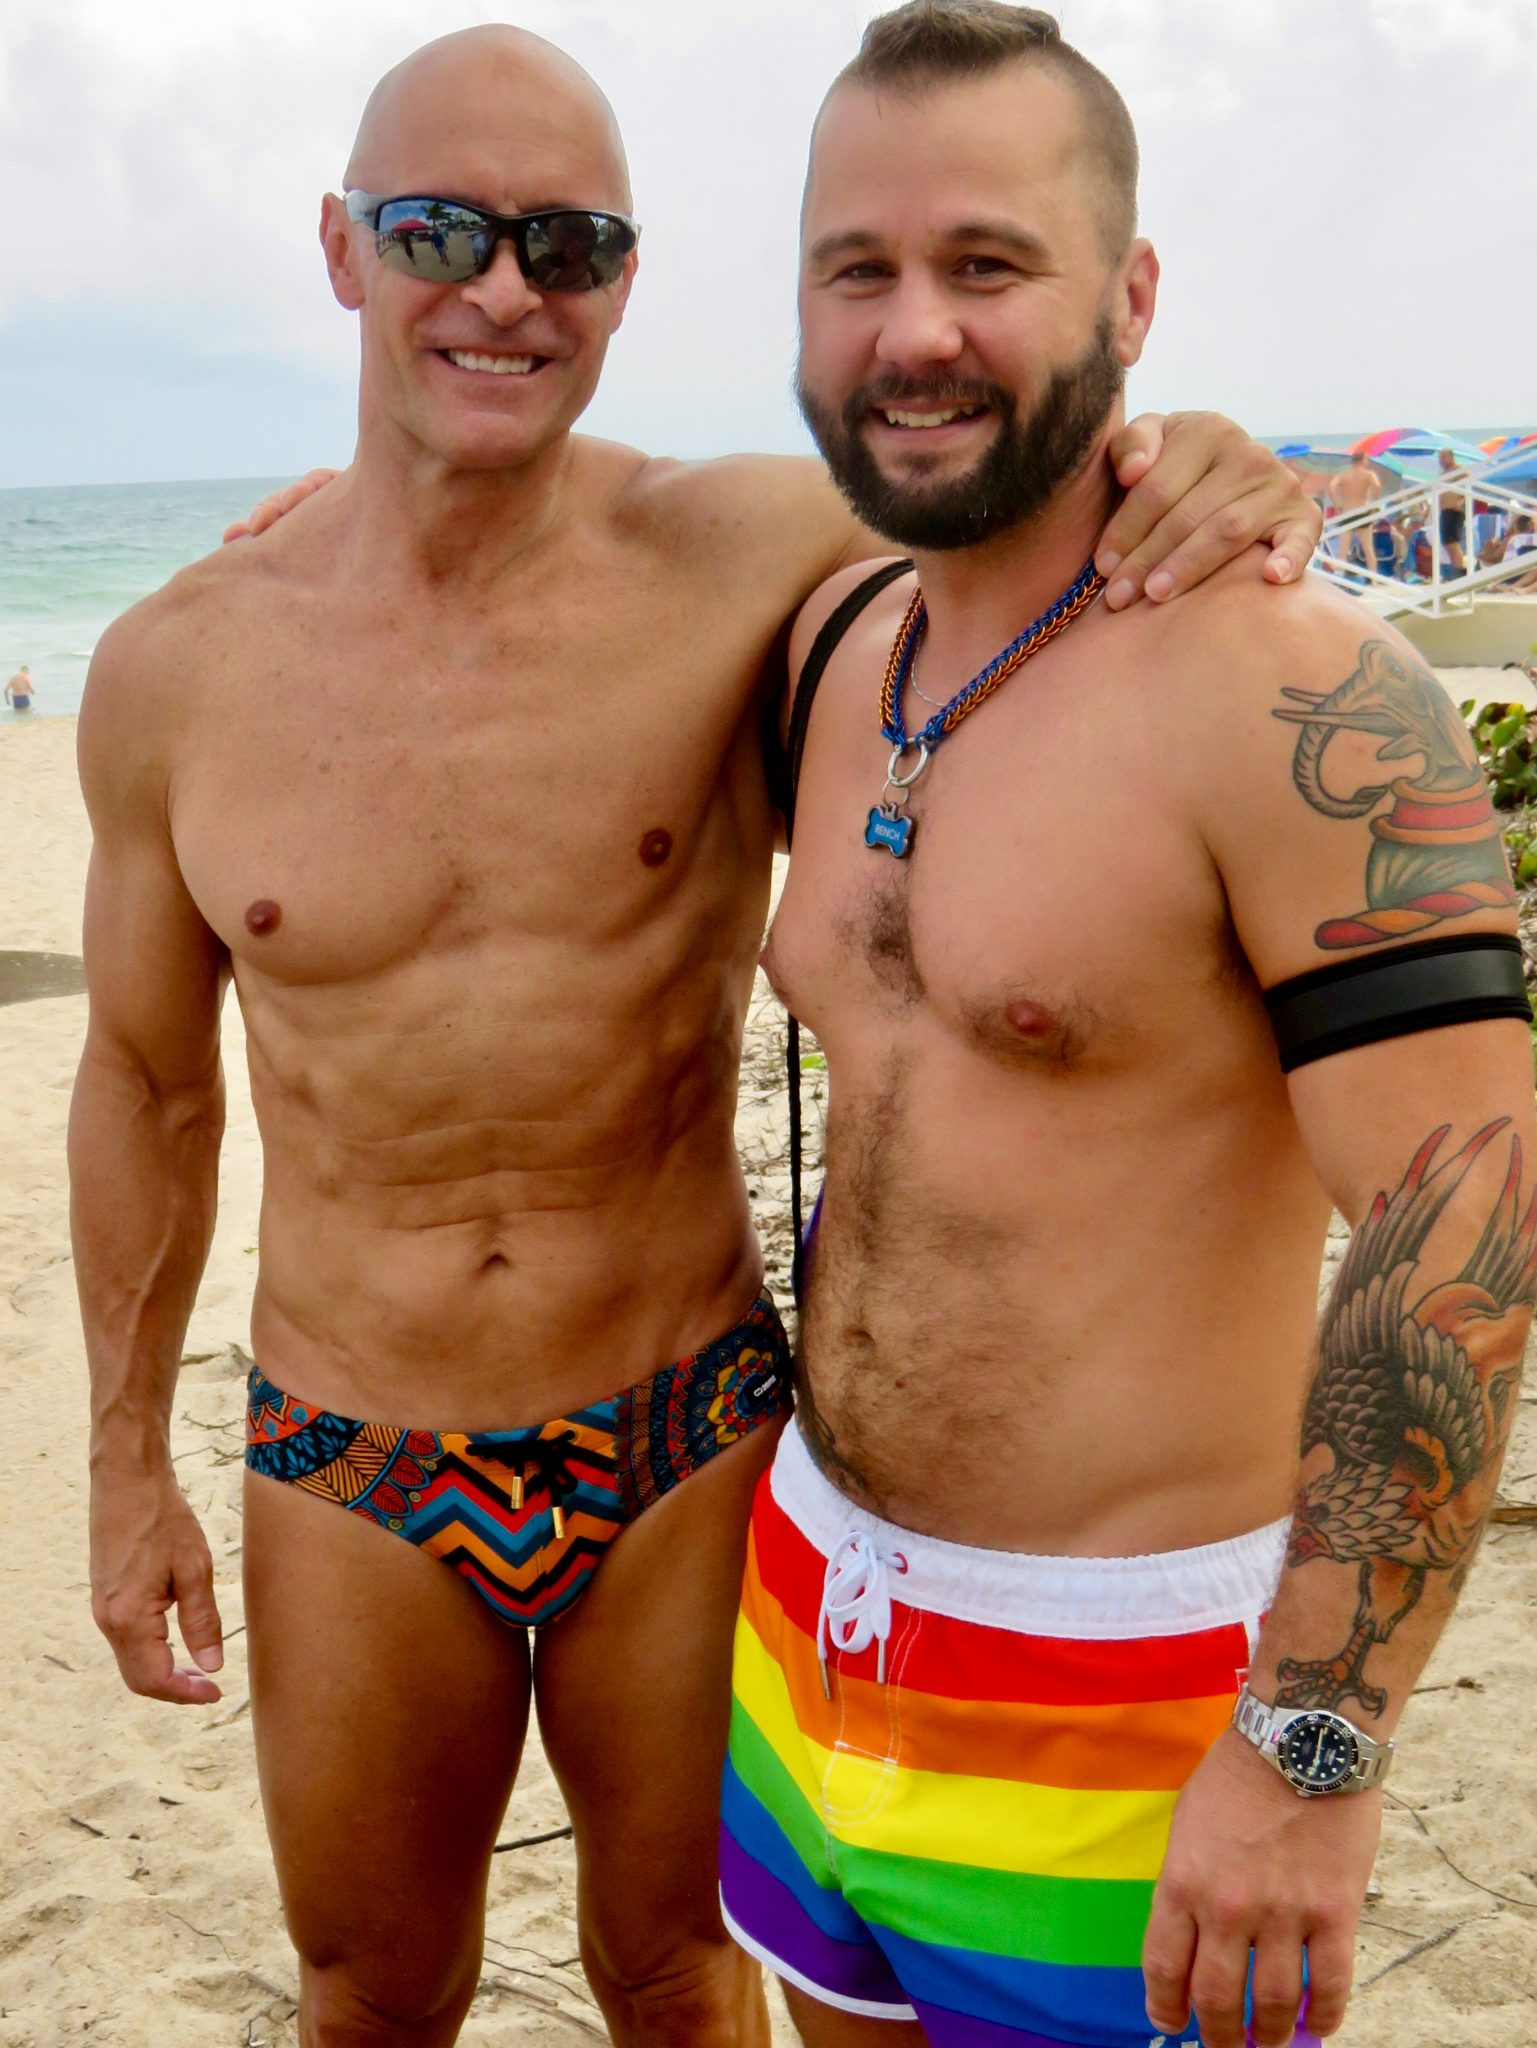 lauderdale photographer gay Fort